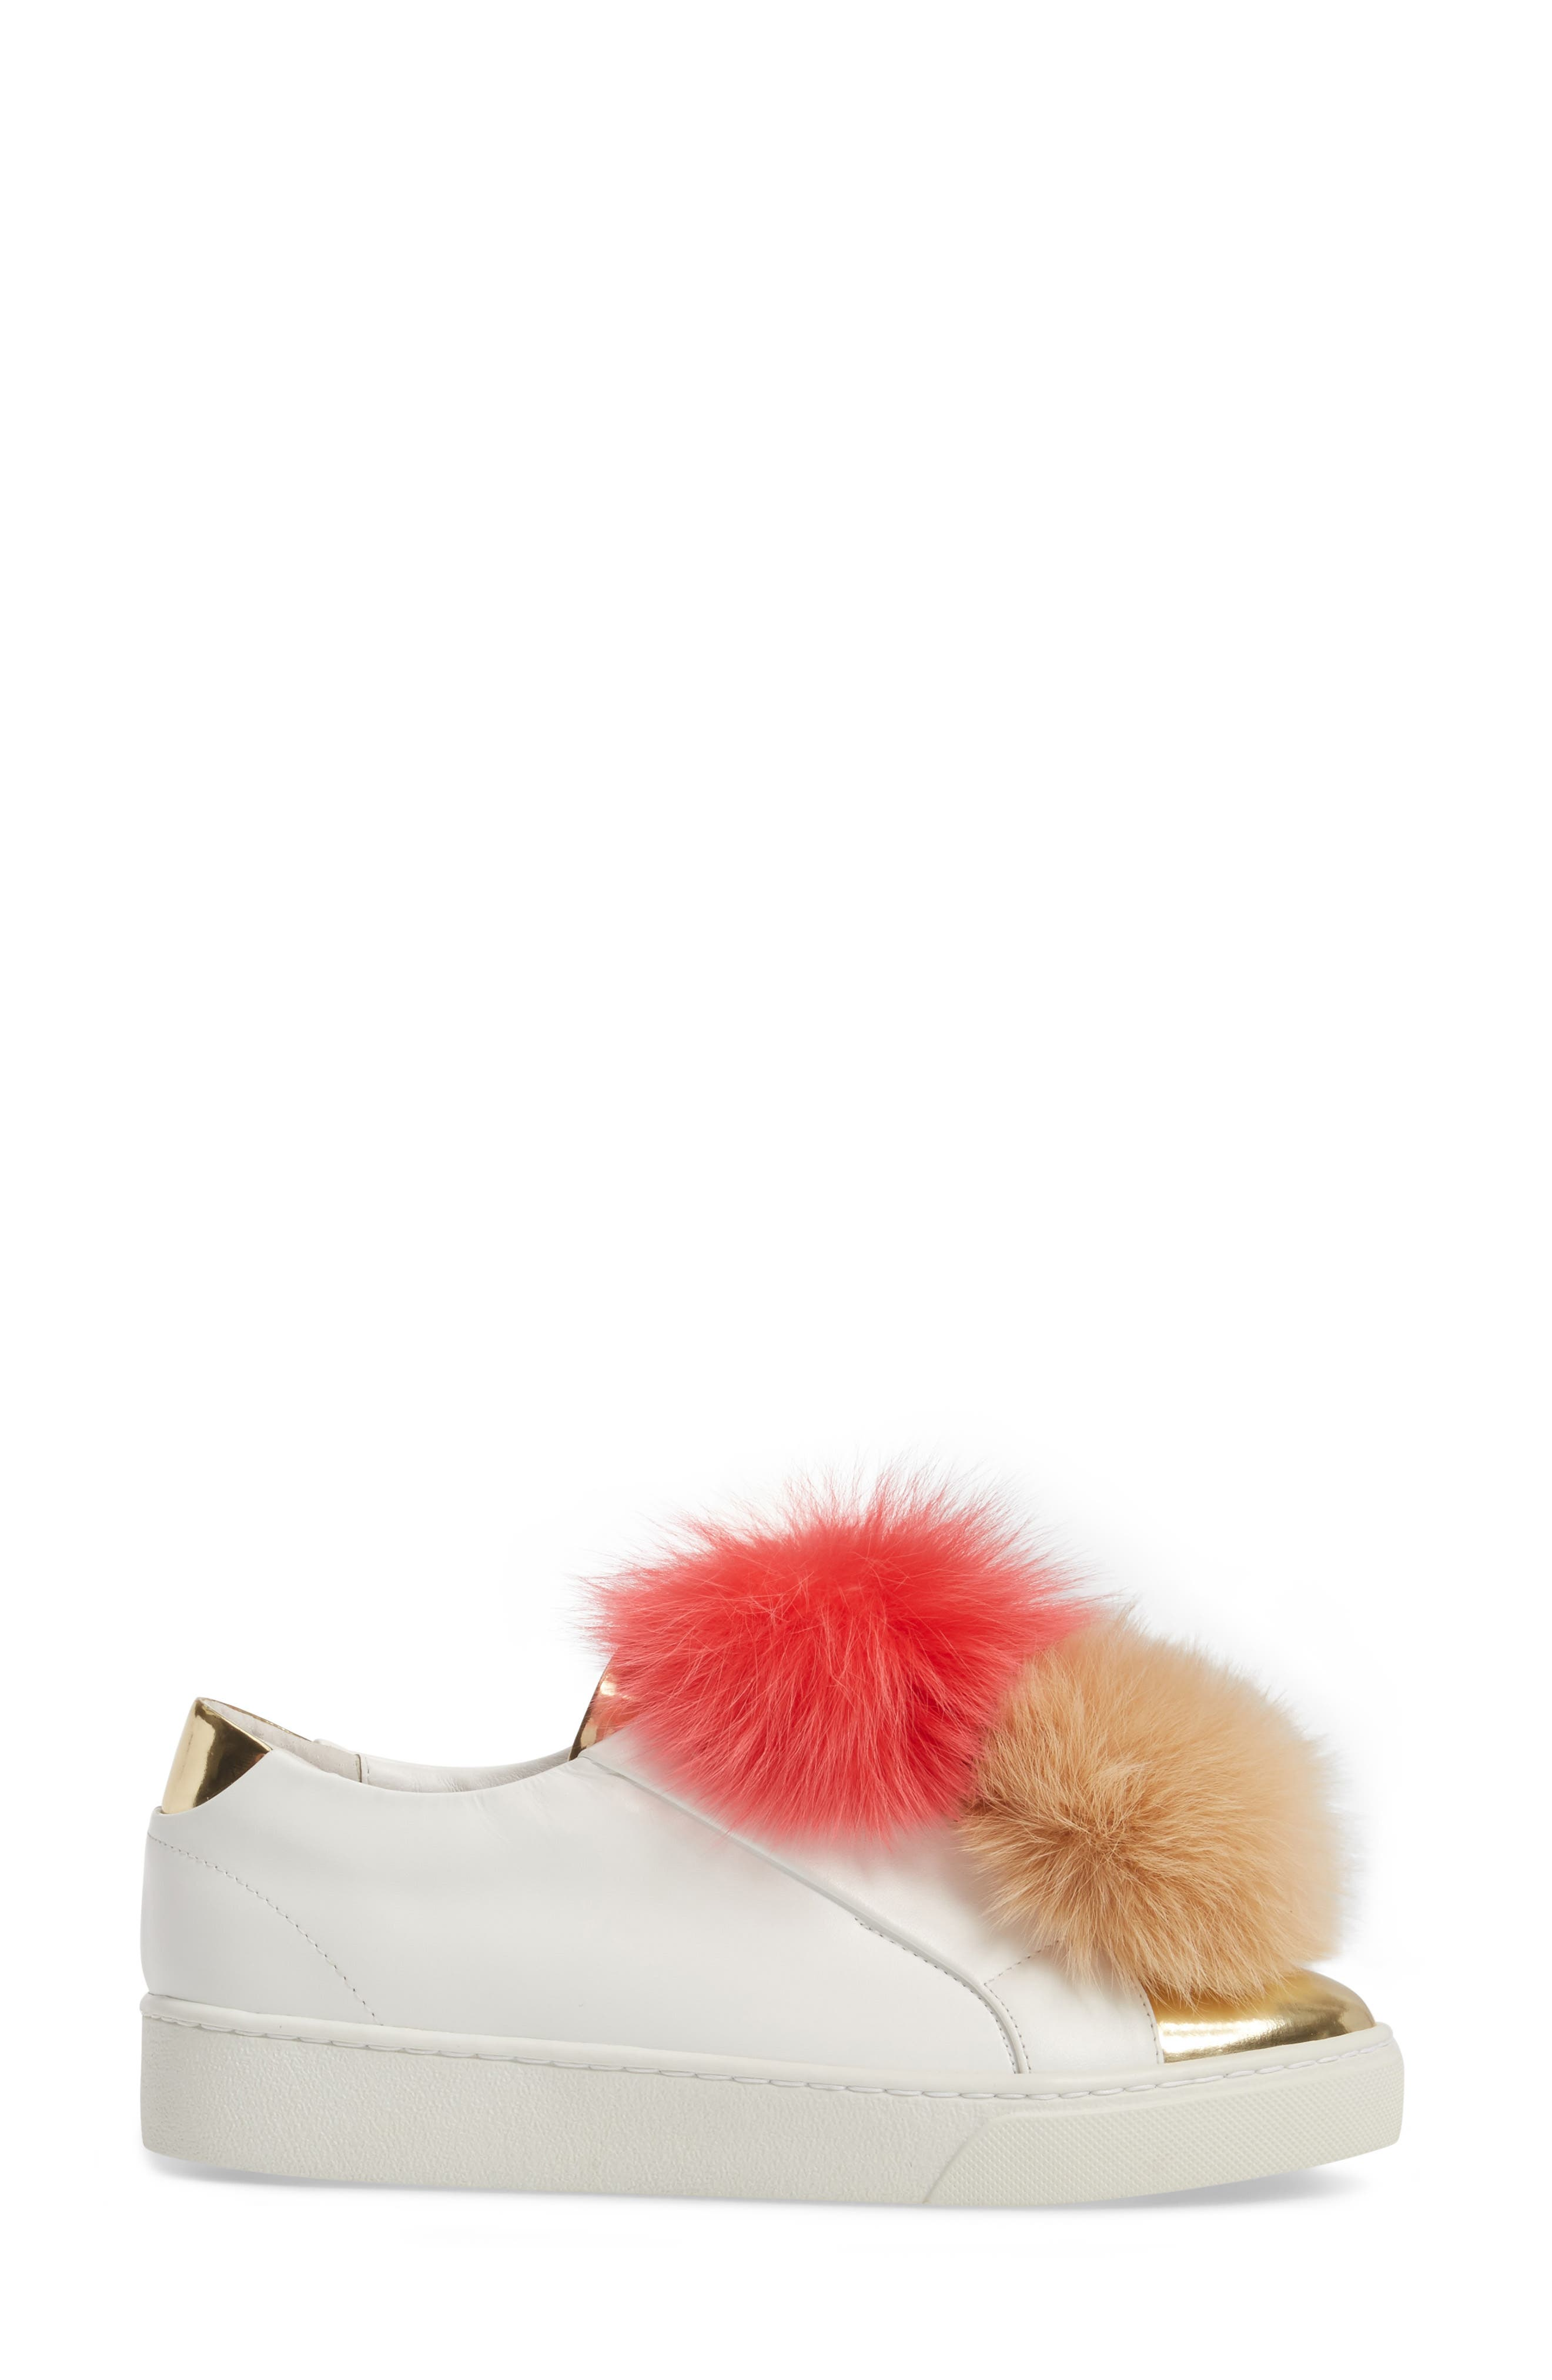 Coco Genuine Fox Fur Trim Platfrom Sneaker,                             Alternate thumbnail 3, color,                             Pink/Camel Leather